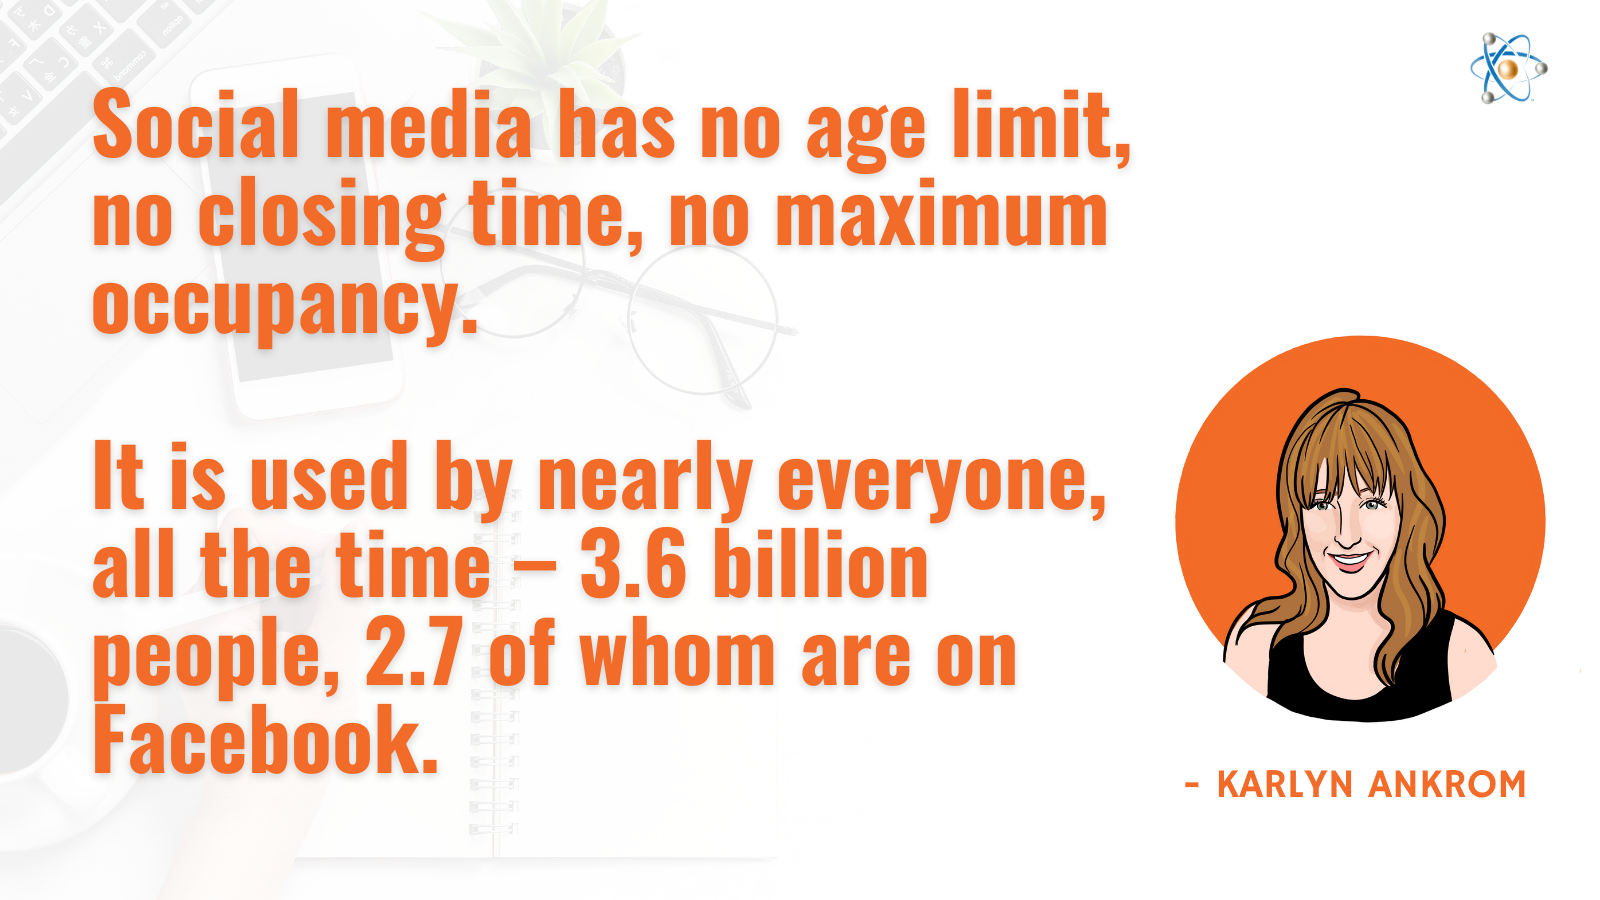 social media age limit closing time maximum occupany karlyn ankrom quote people facebook